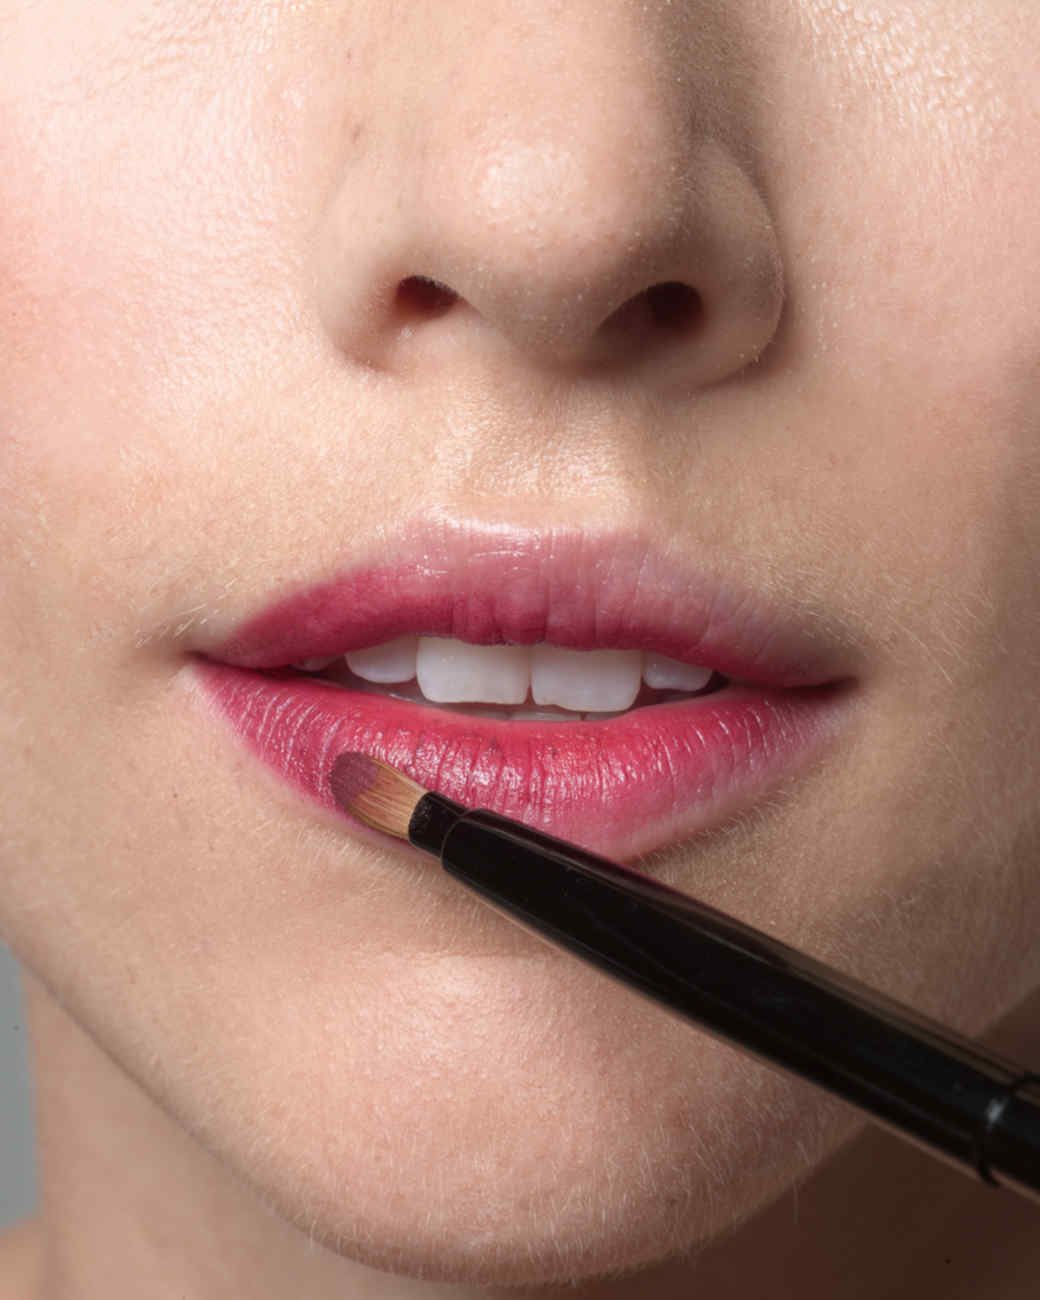 bc-smile-lips-5-pd103362howto3_025.jpg